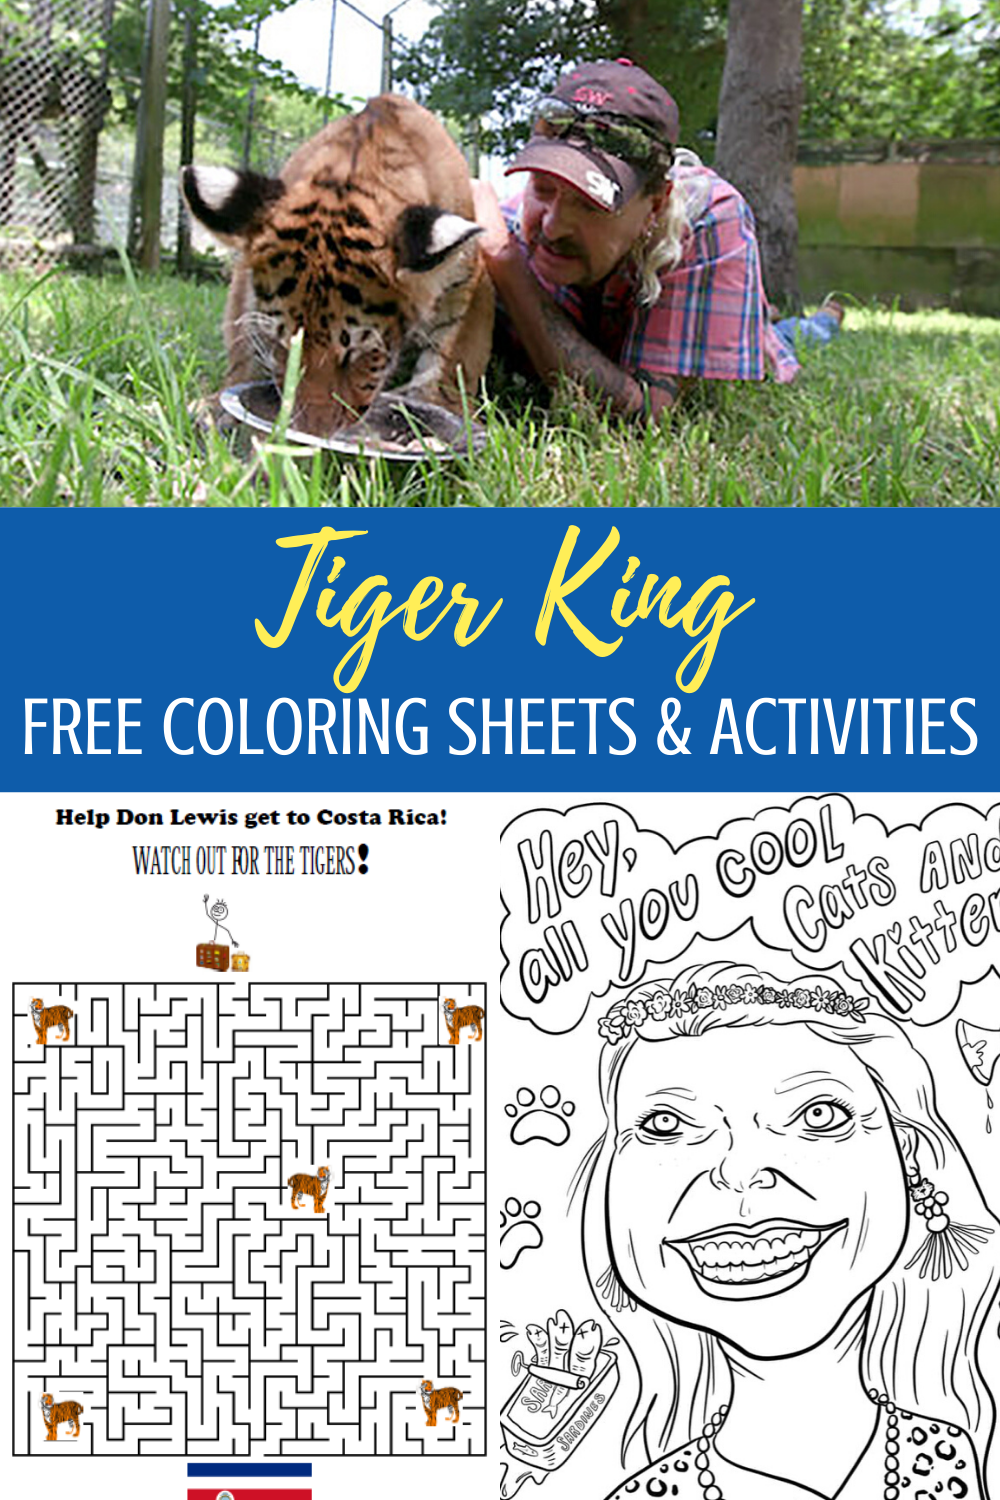 Free Netflix Tiger King Coloring Pages And Activities Nerd Humor Coloring Pages Disney Plus